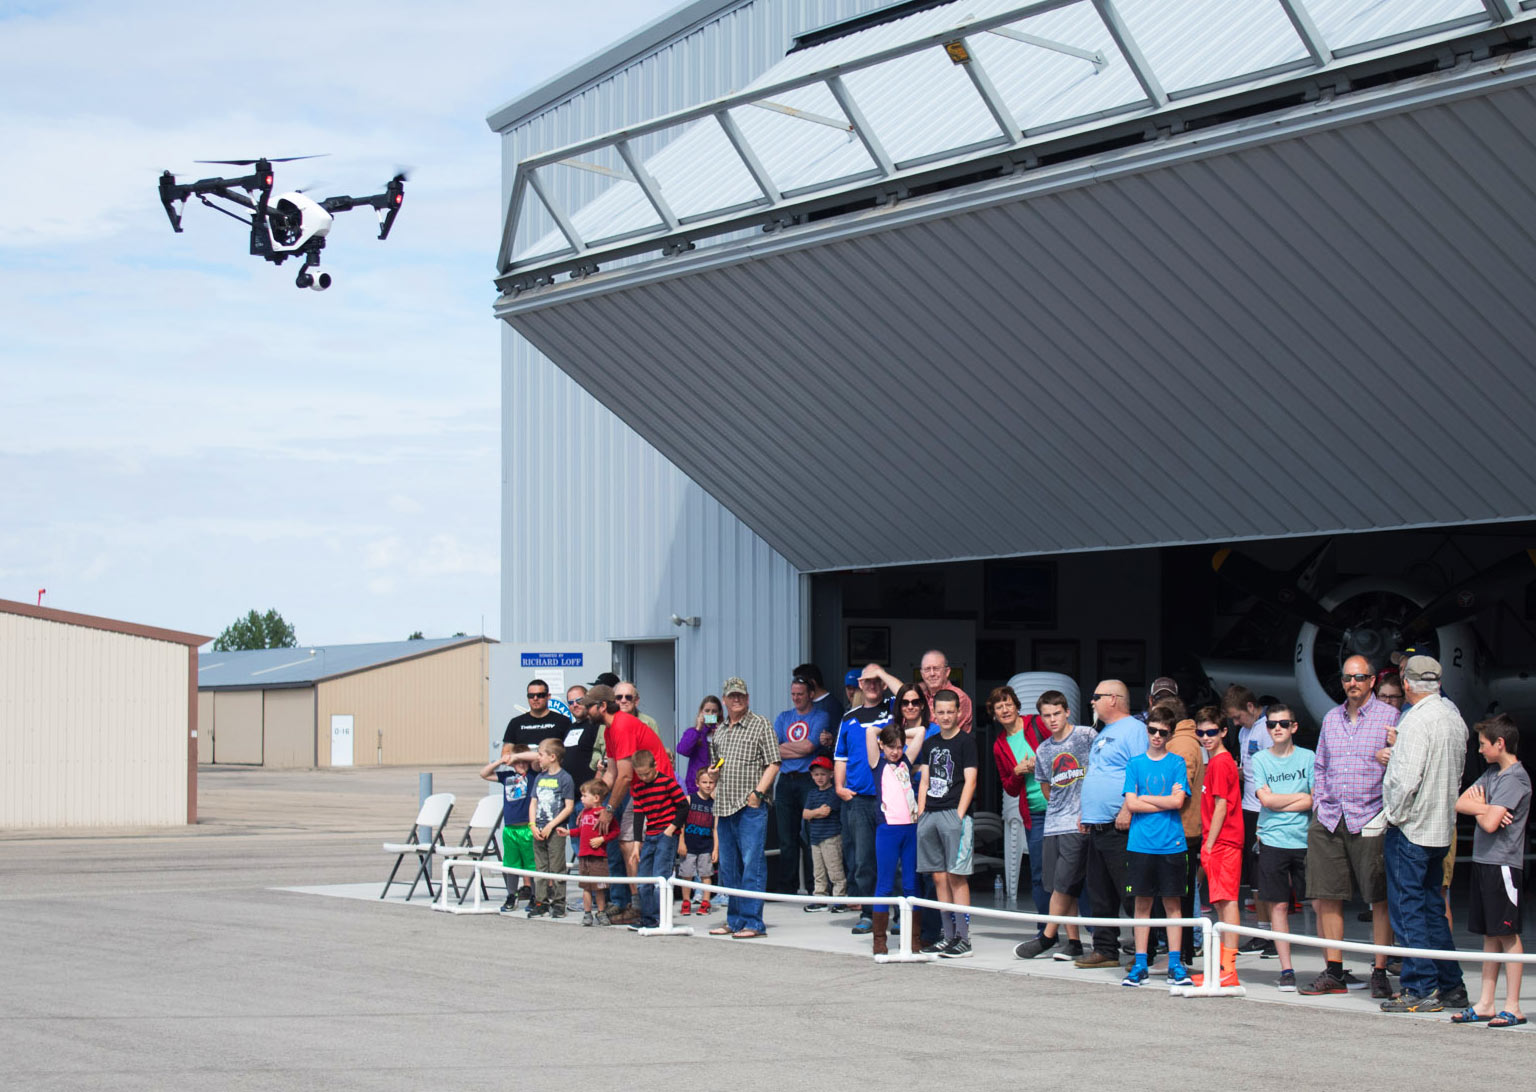 Kids and Adults watching a drone fly by at Warhawk Drone Days